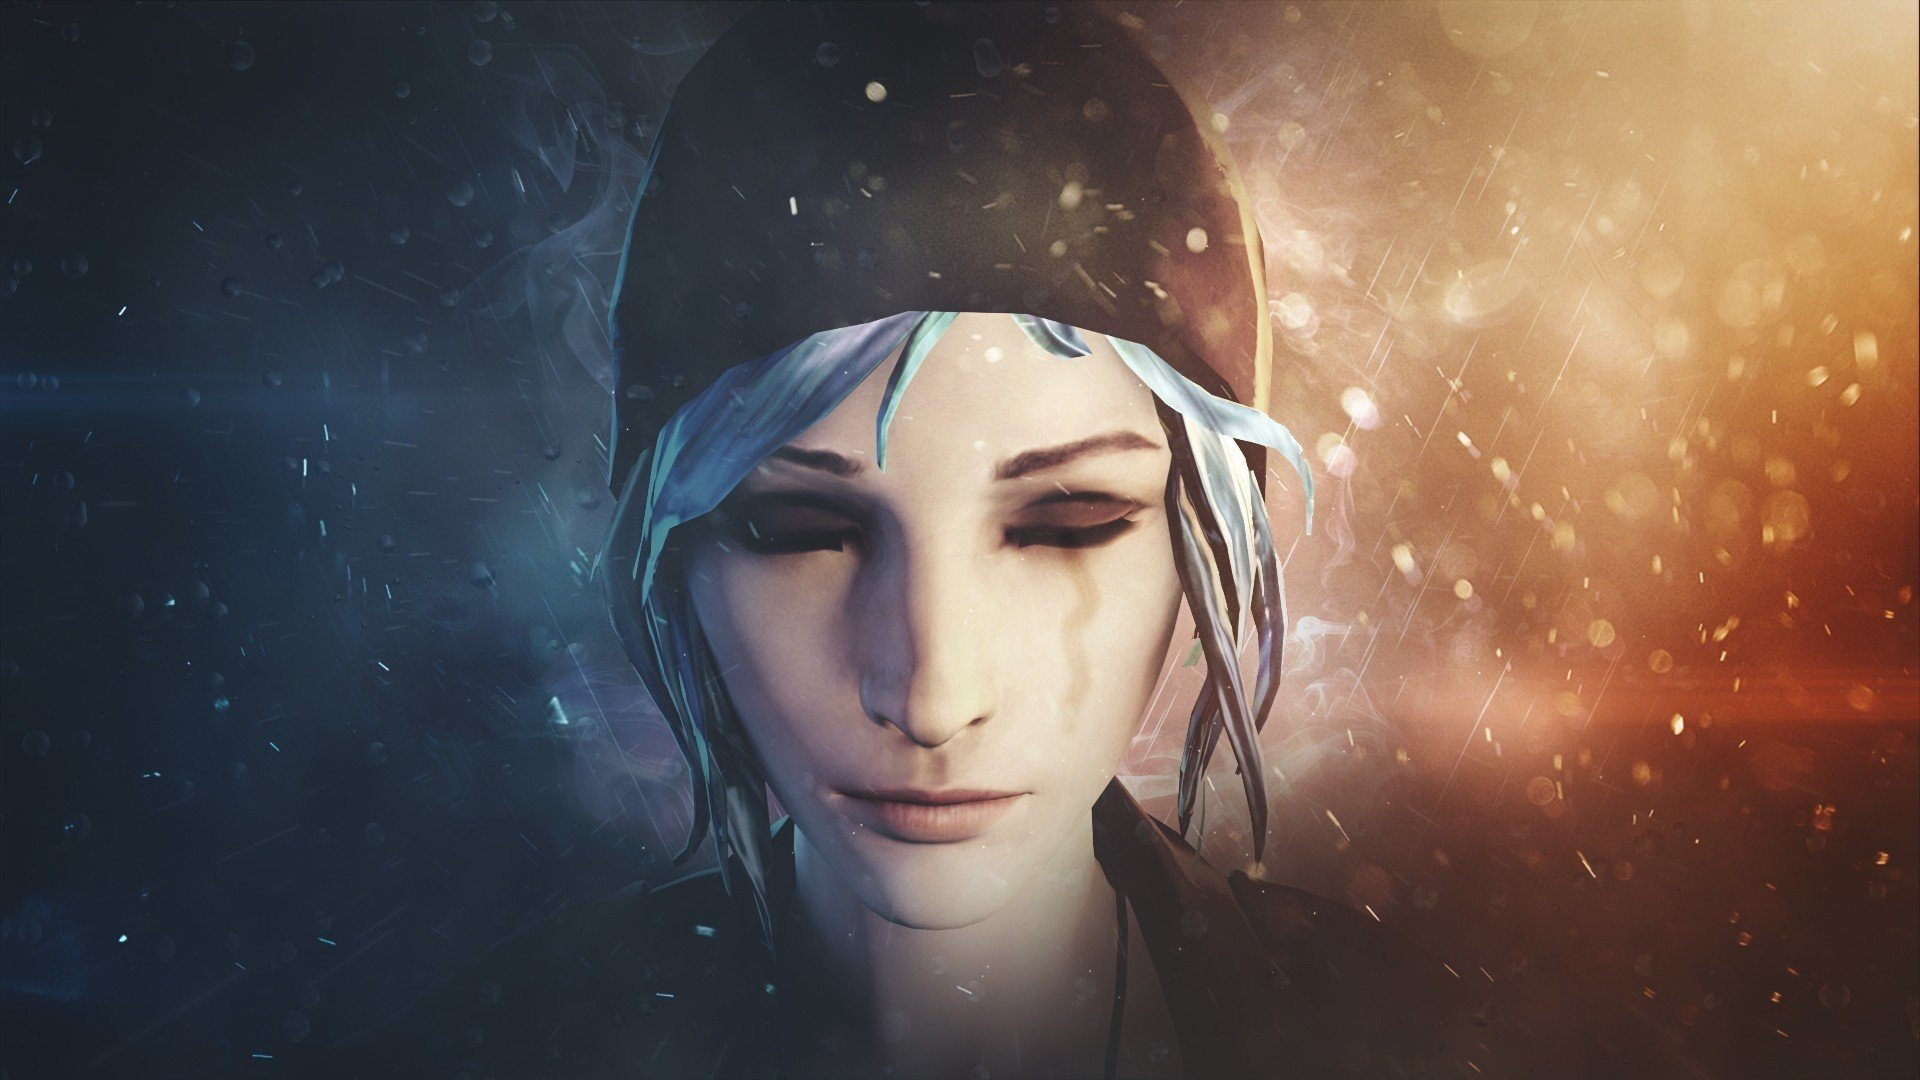 73 Chloe Price Wallpapers on WallpaperPlay 1920x1080